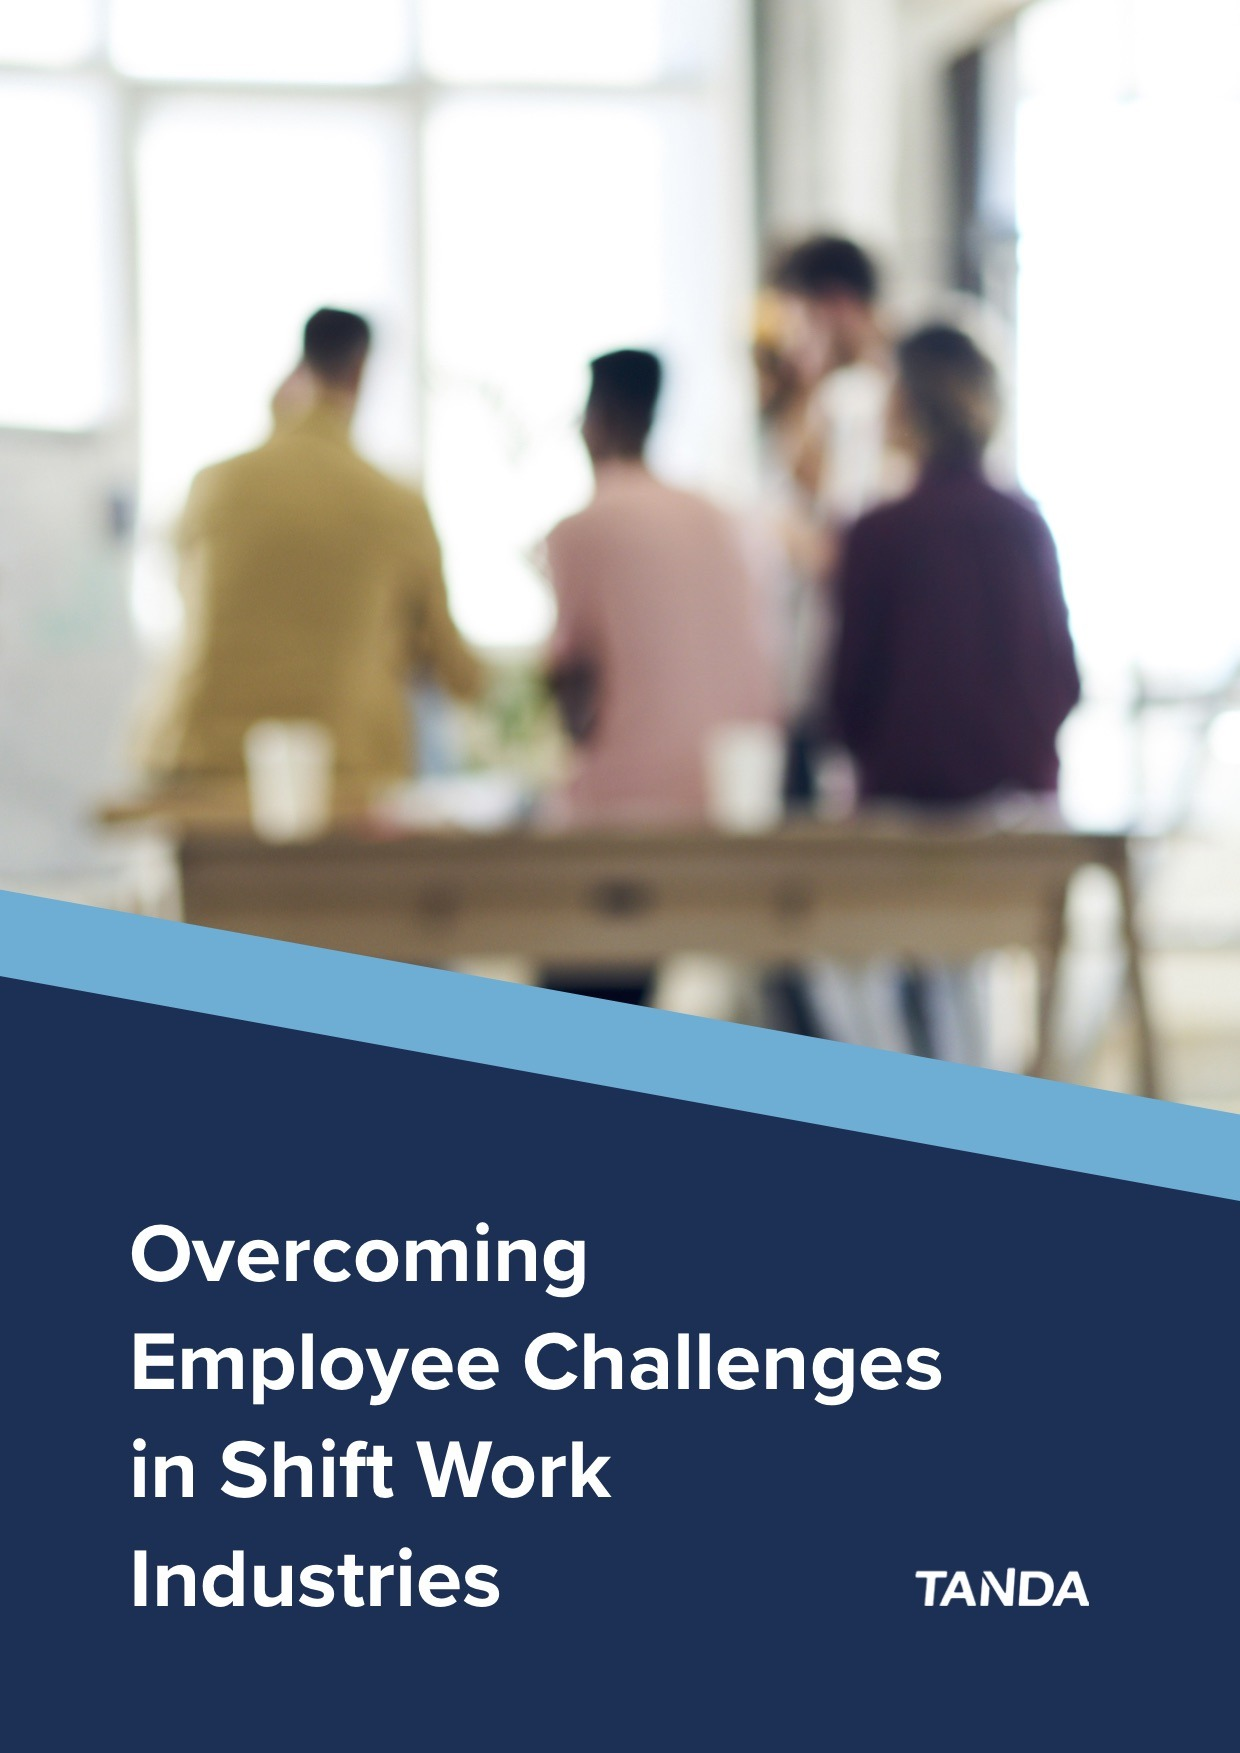 Overcoming Employee Challenges in Shift Work Industries